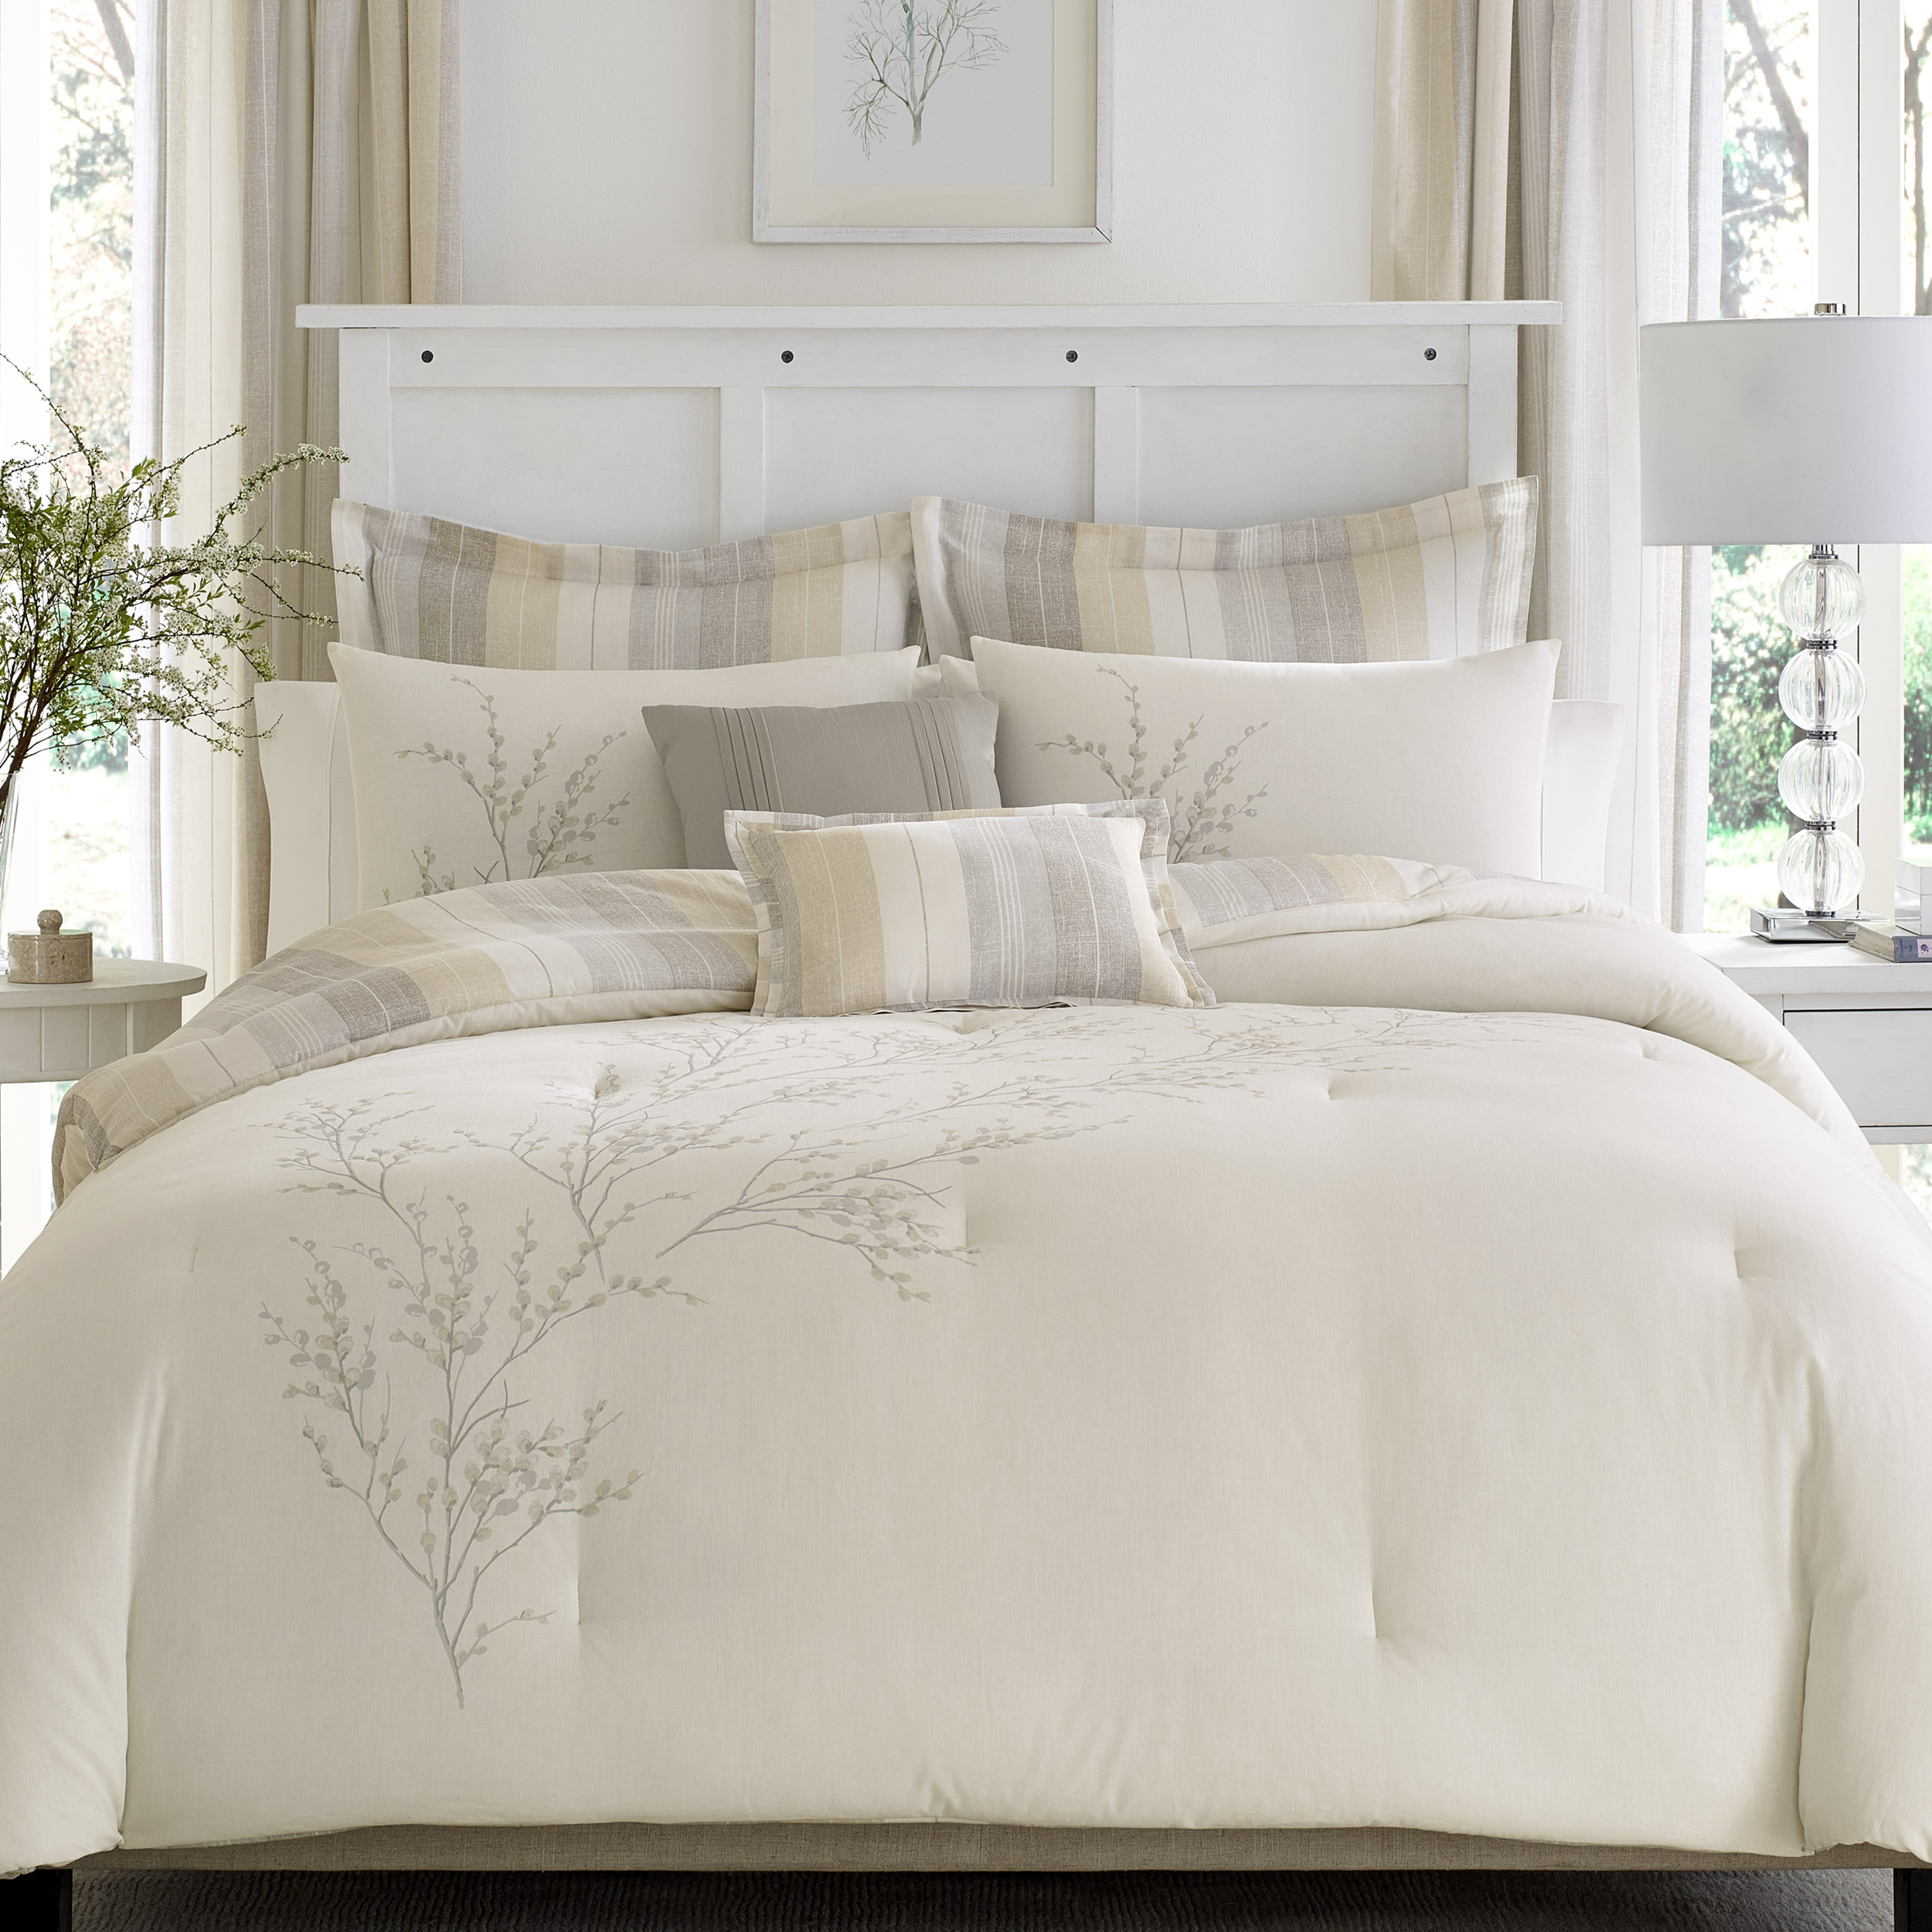 Laura Ashley  Willow collection available at Bon Ton